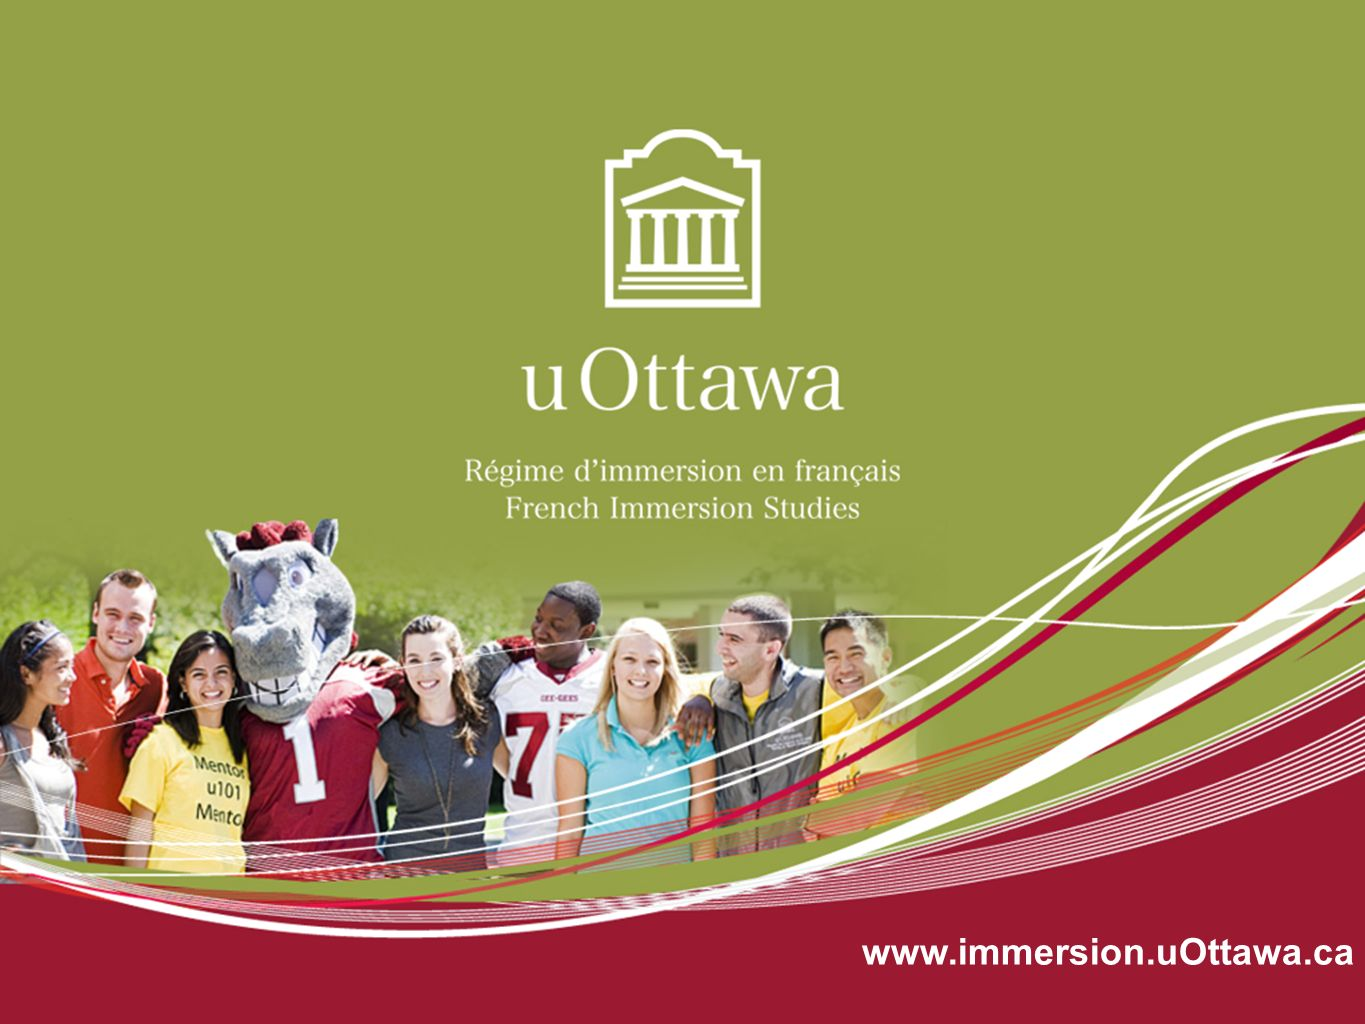 www.immersion.uOttawa.ca